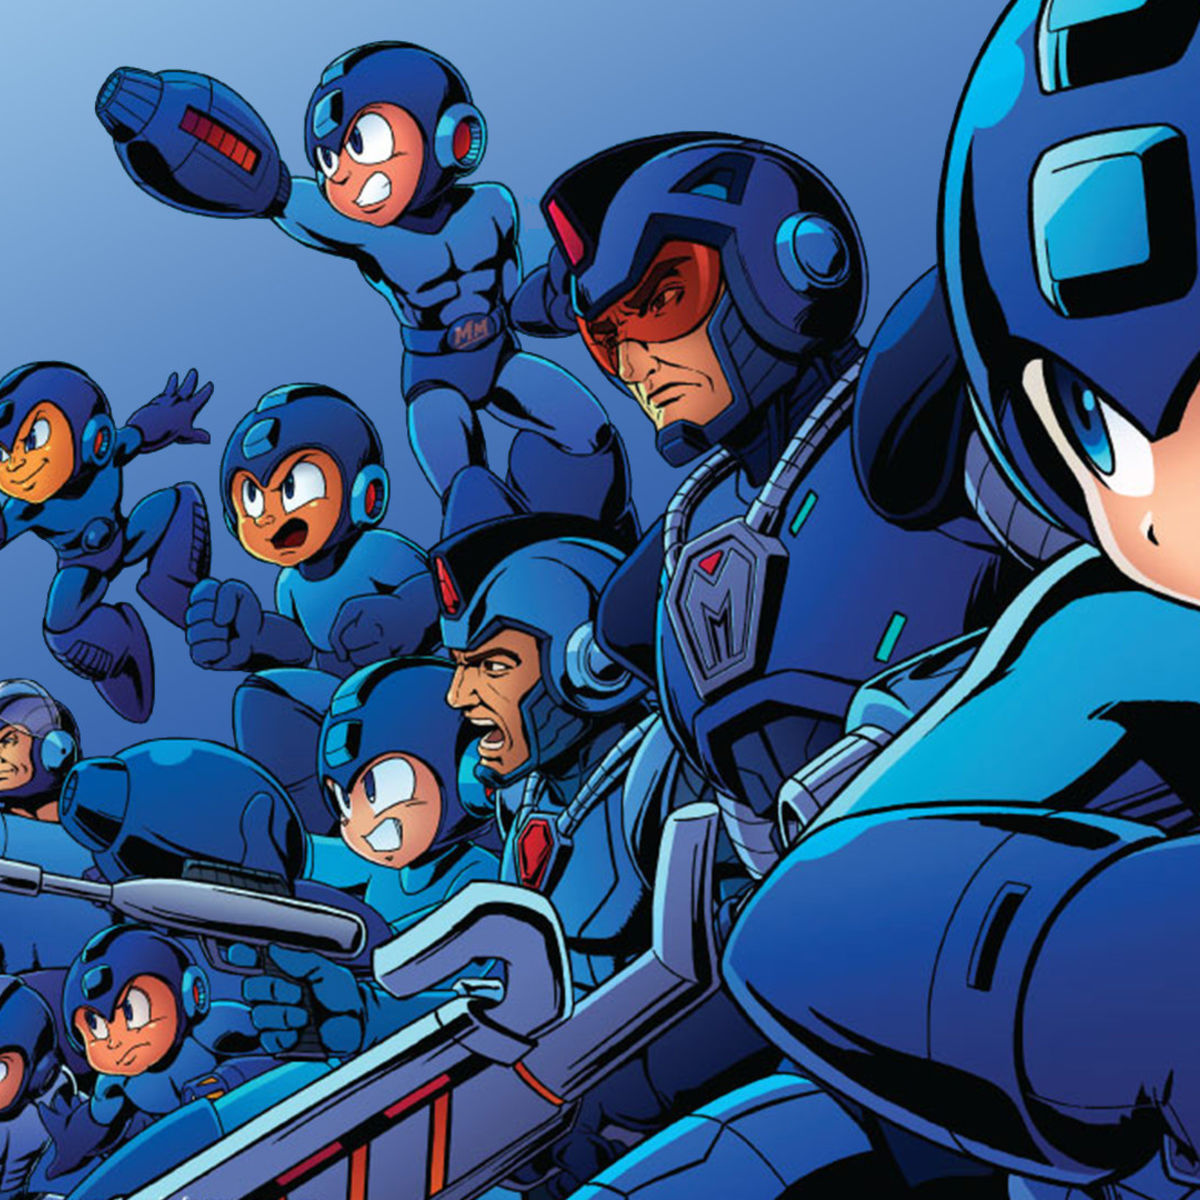 Gaming Call Of Duty Releases Battle Royale Footage Mega Man 11